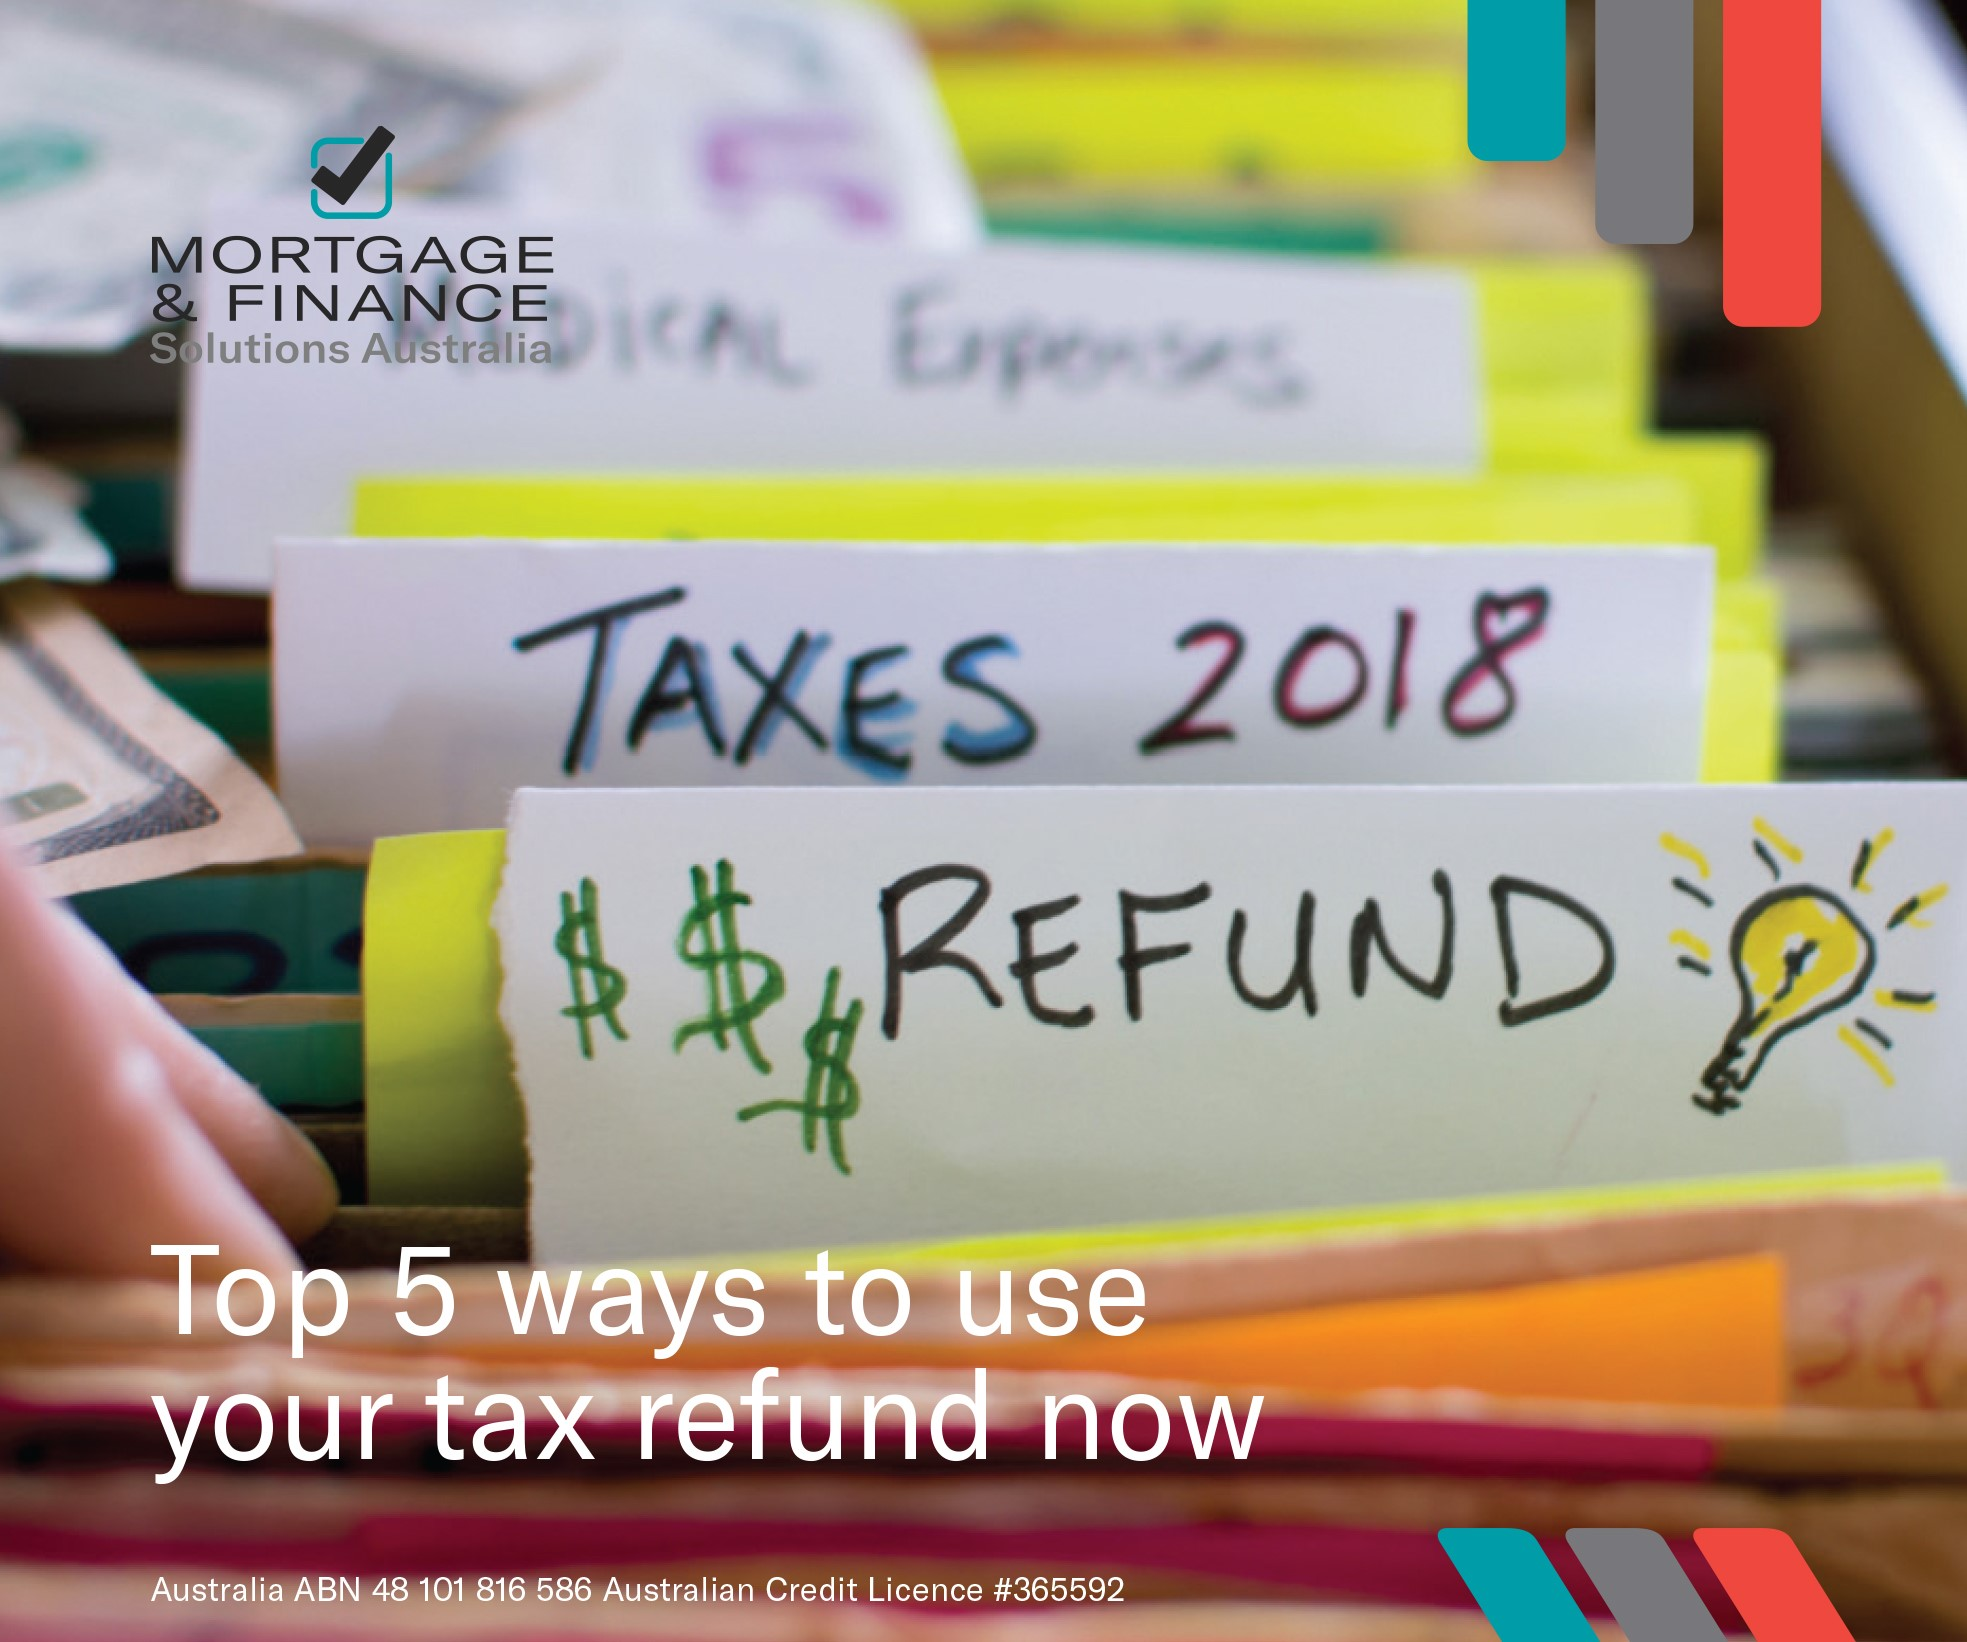 Top 5 ways to use your tax refund now